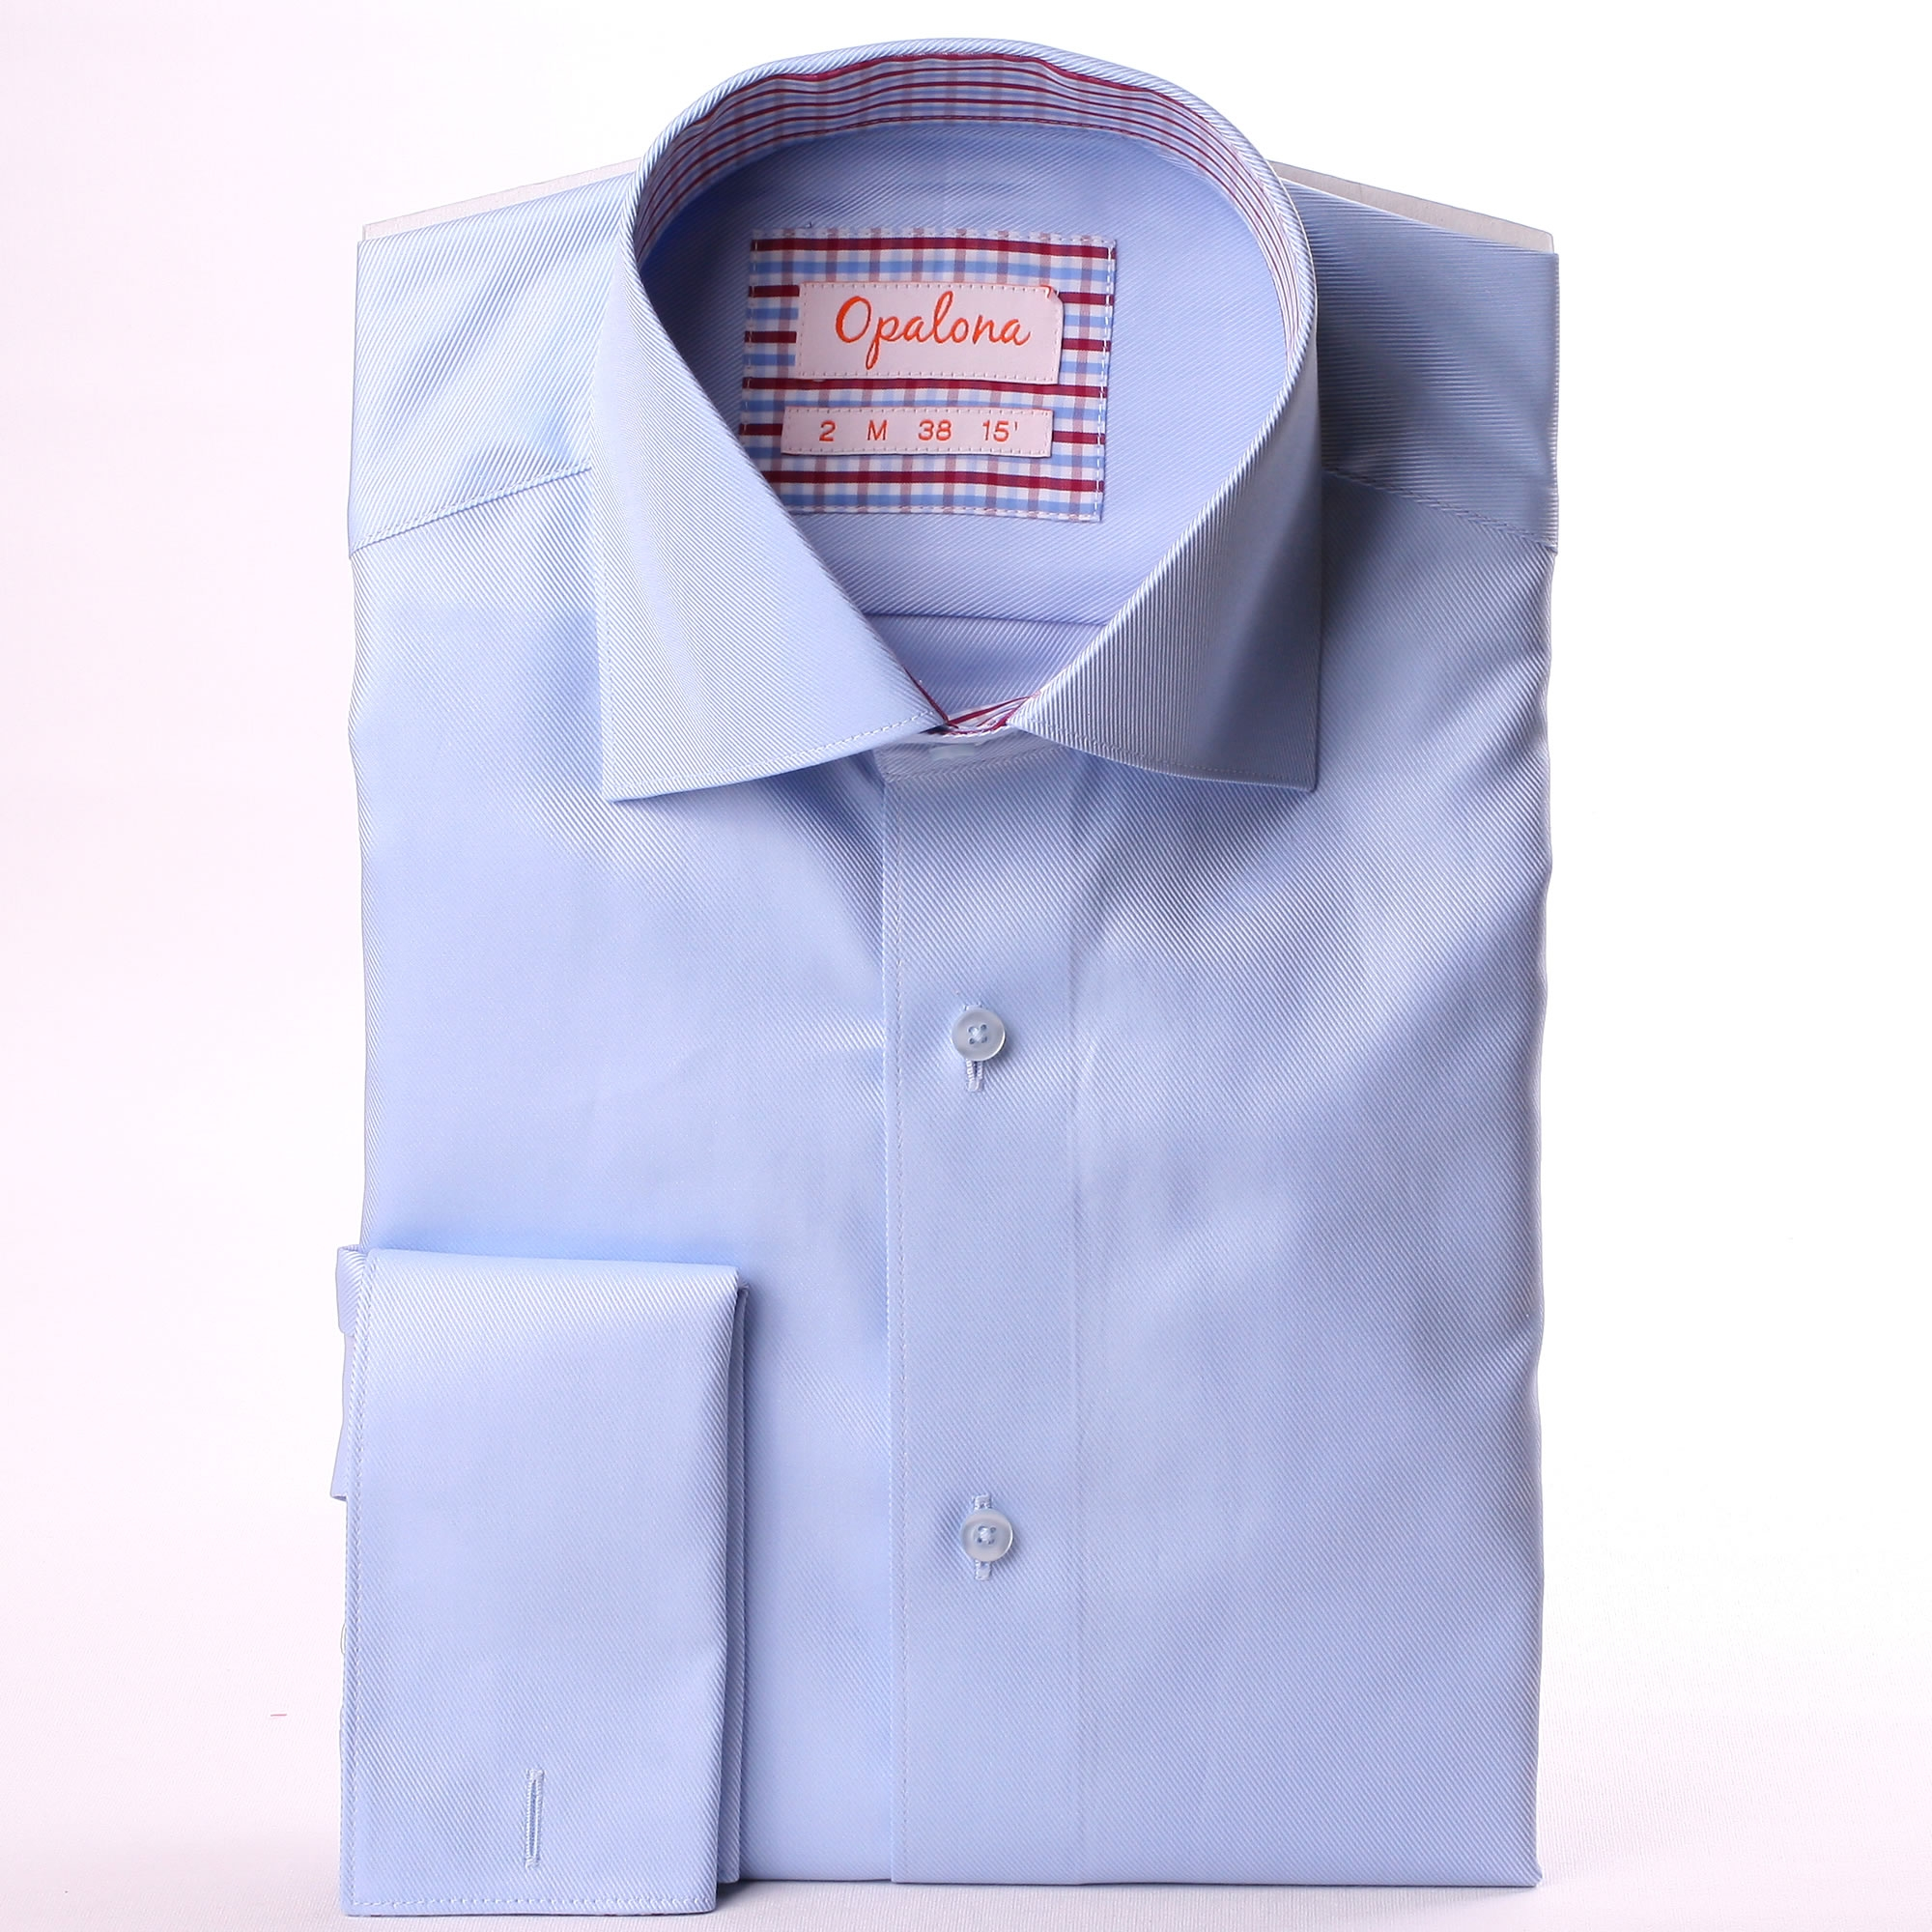 French Cuff Shirt With Light Blue White And Burgundy